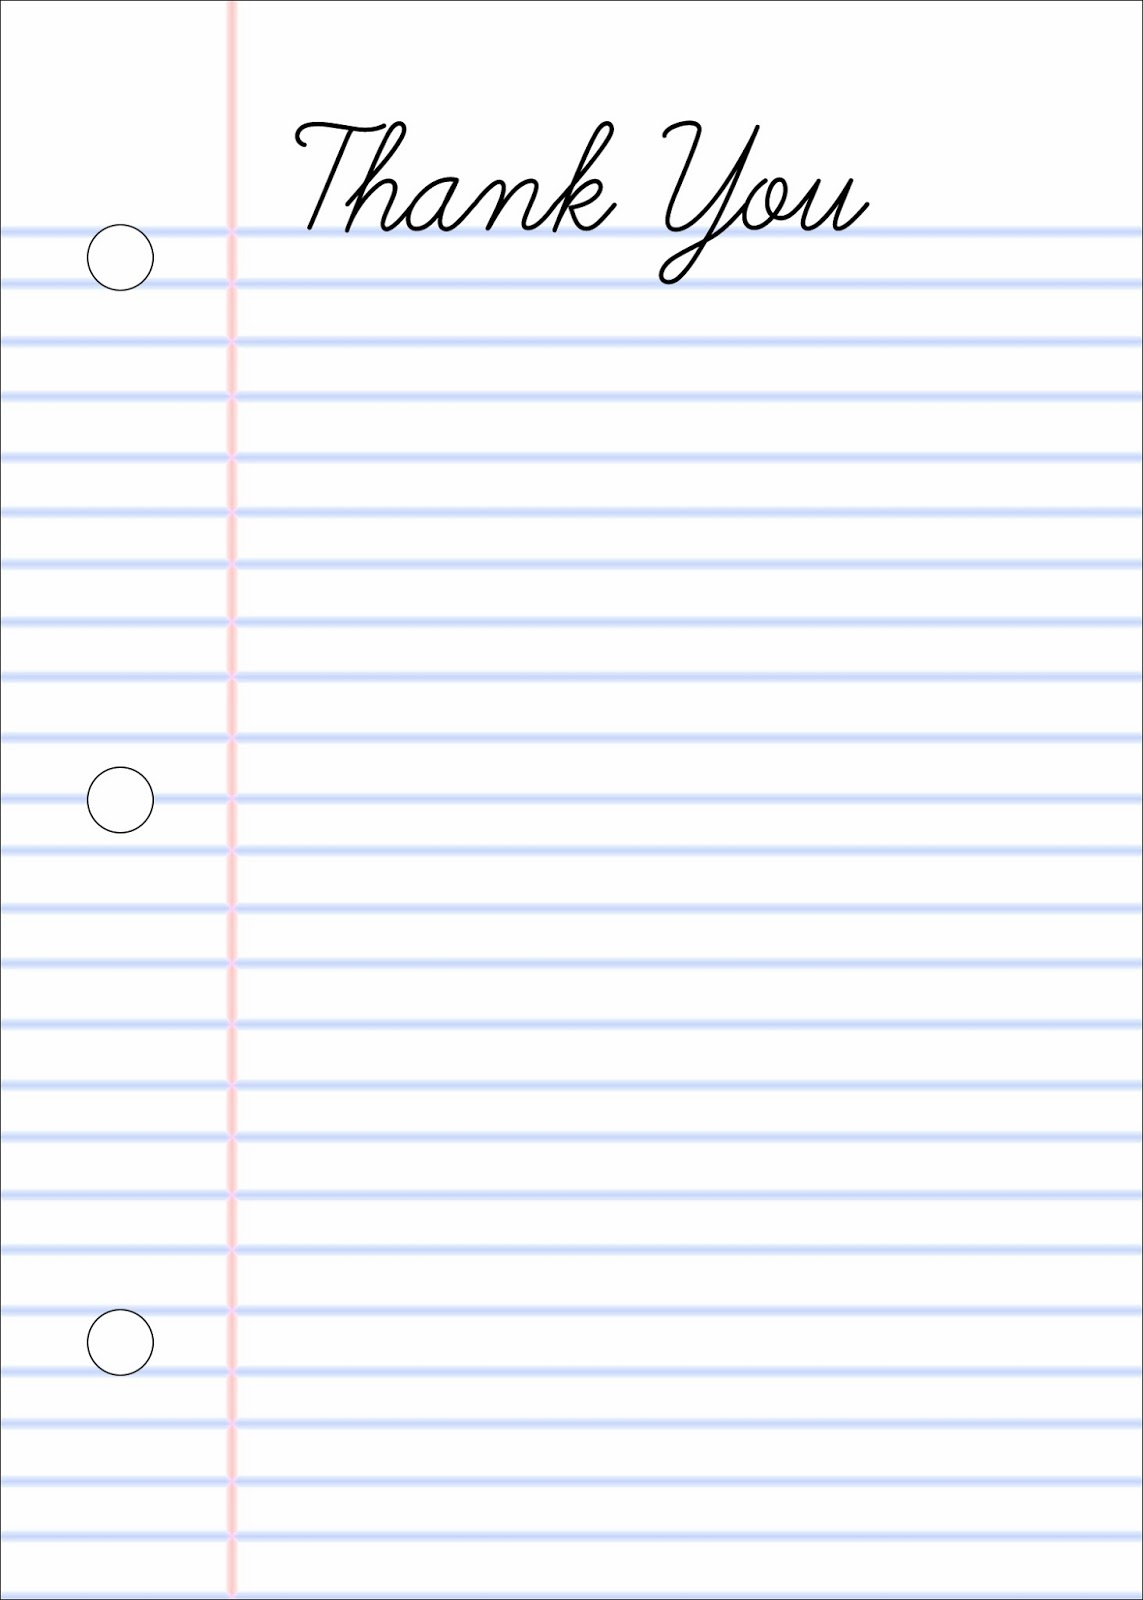 This is a picture of Free Printable Notebook Paper with border